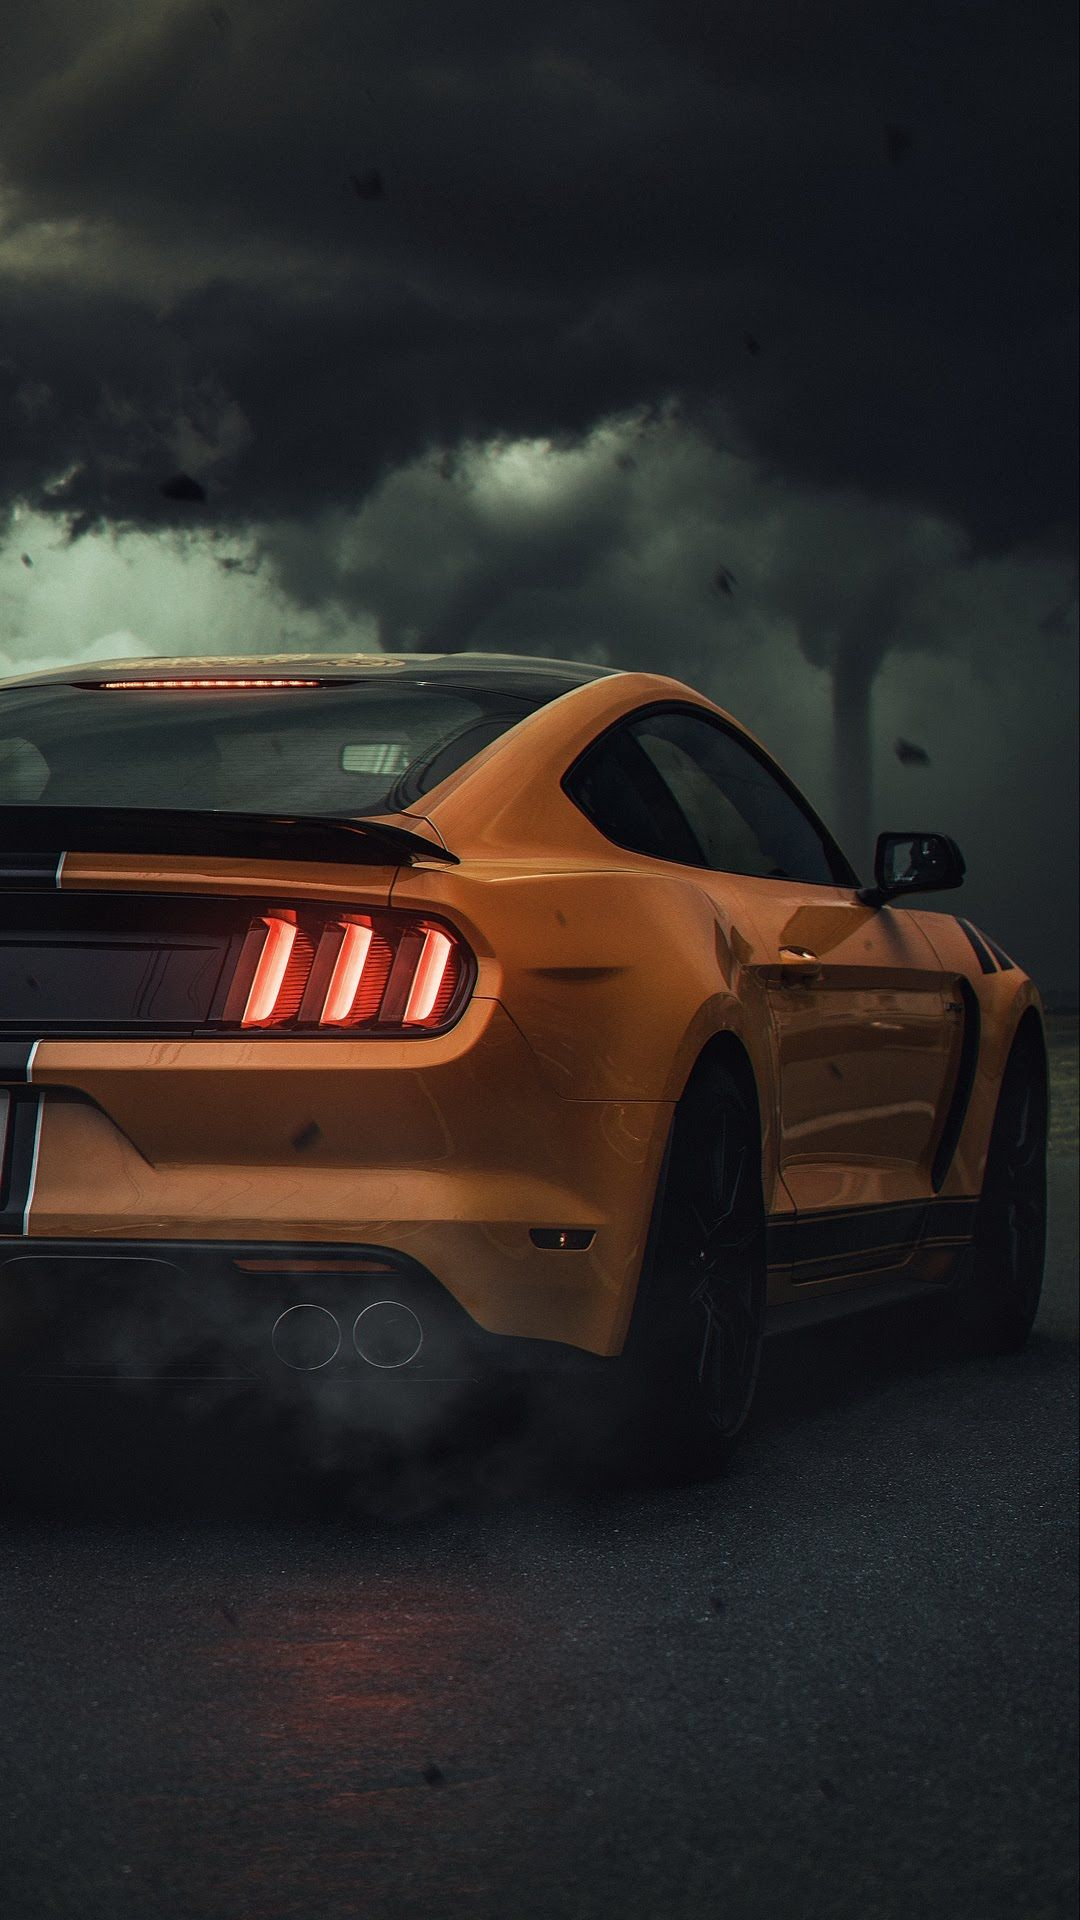 Ford Mustang Hd Wallpapers Download Mustang Wallpaper Sports Cars Mustang Mustang Cars